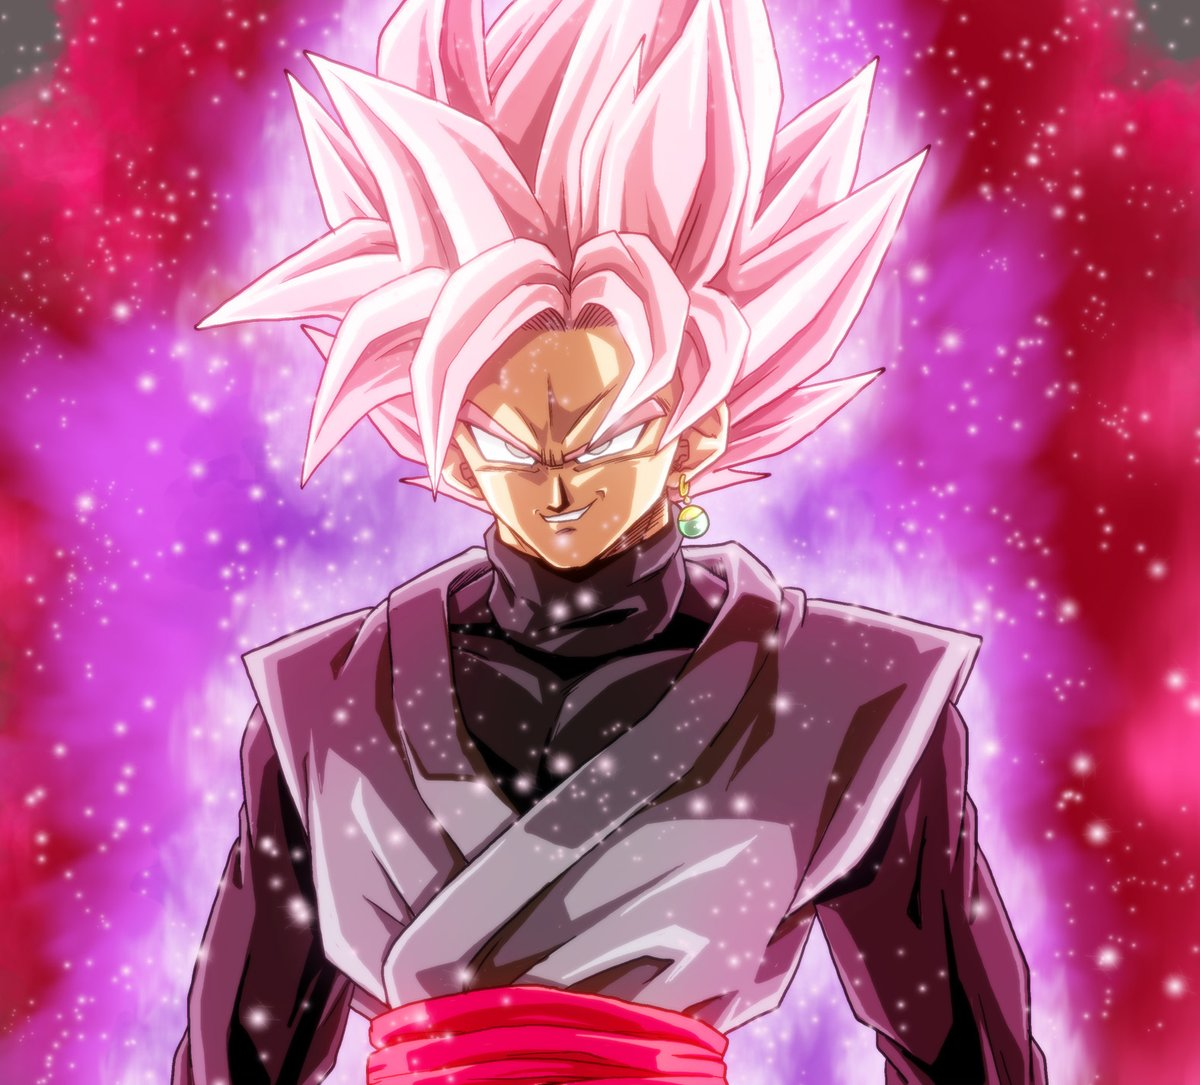 Free Download Goku Black Super Saiyan Rose By Gokussj20